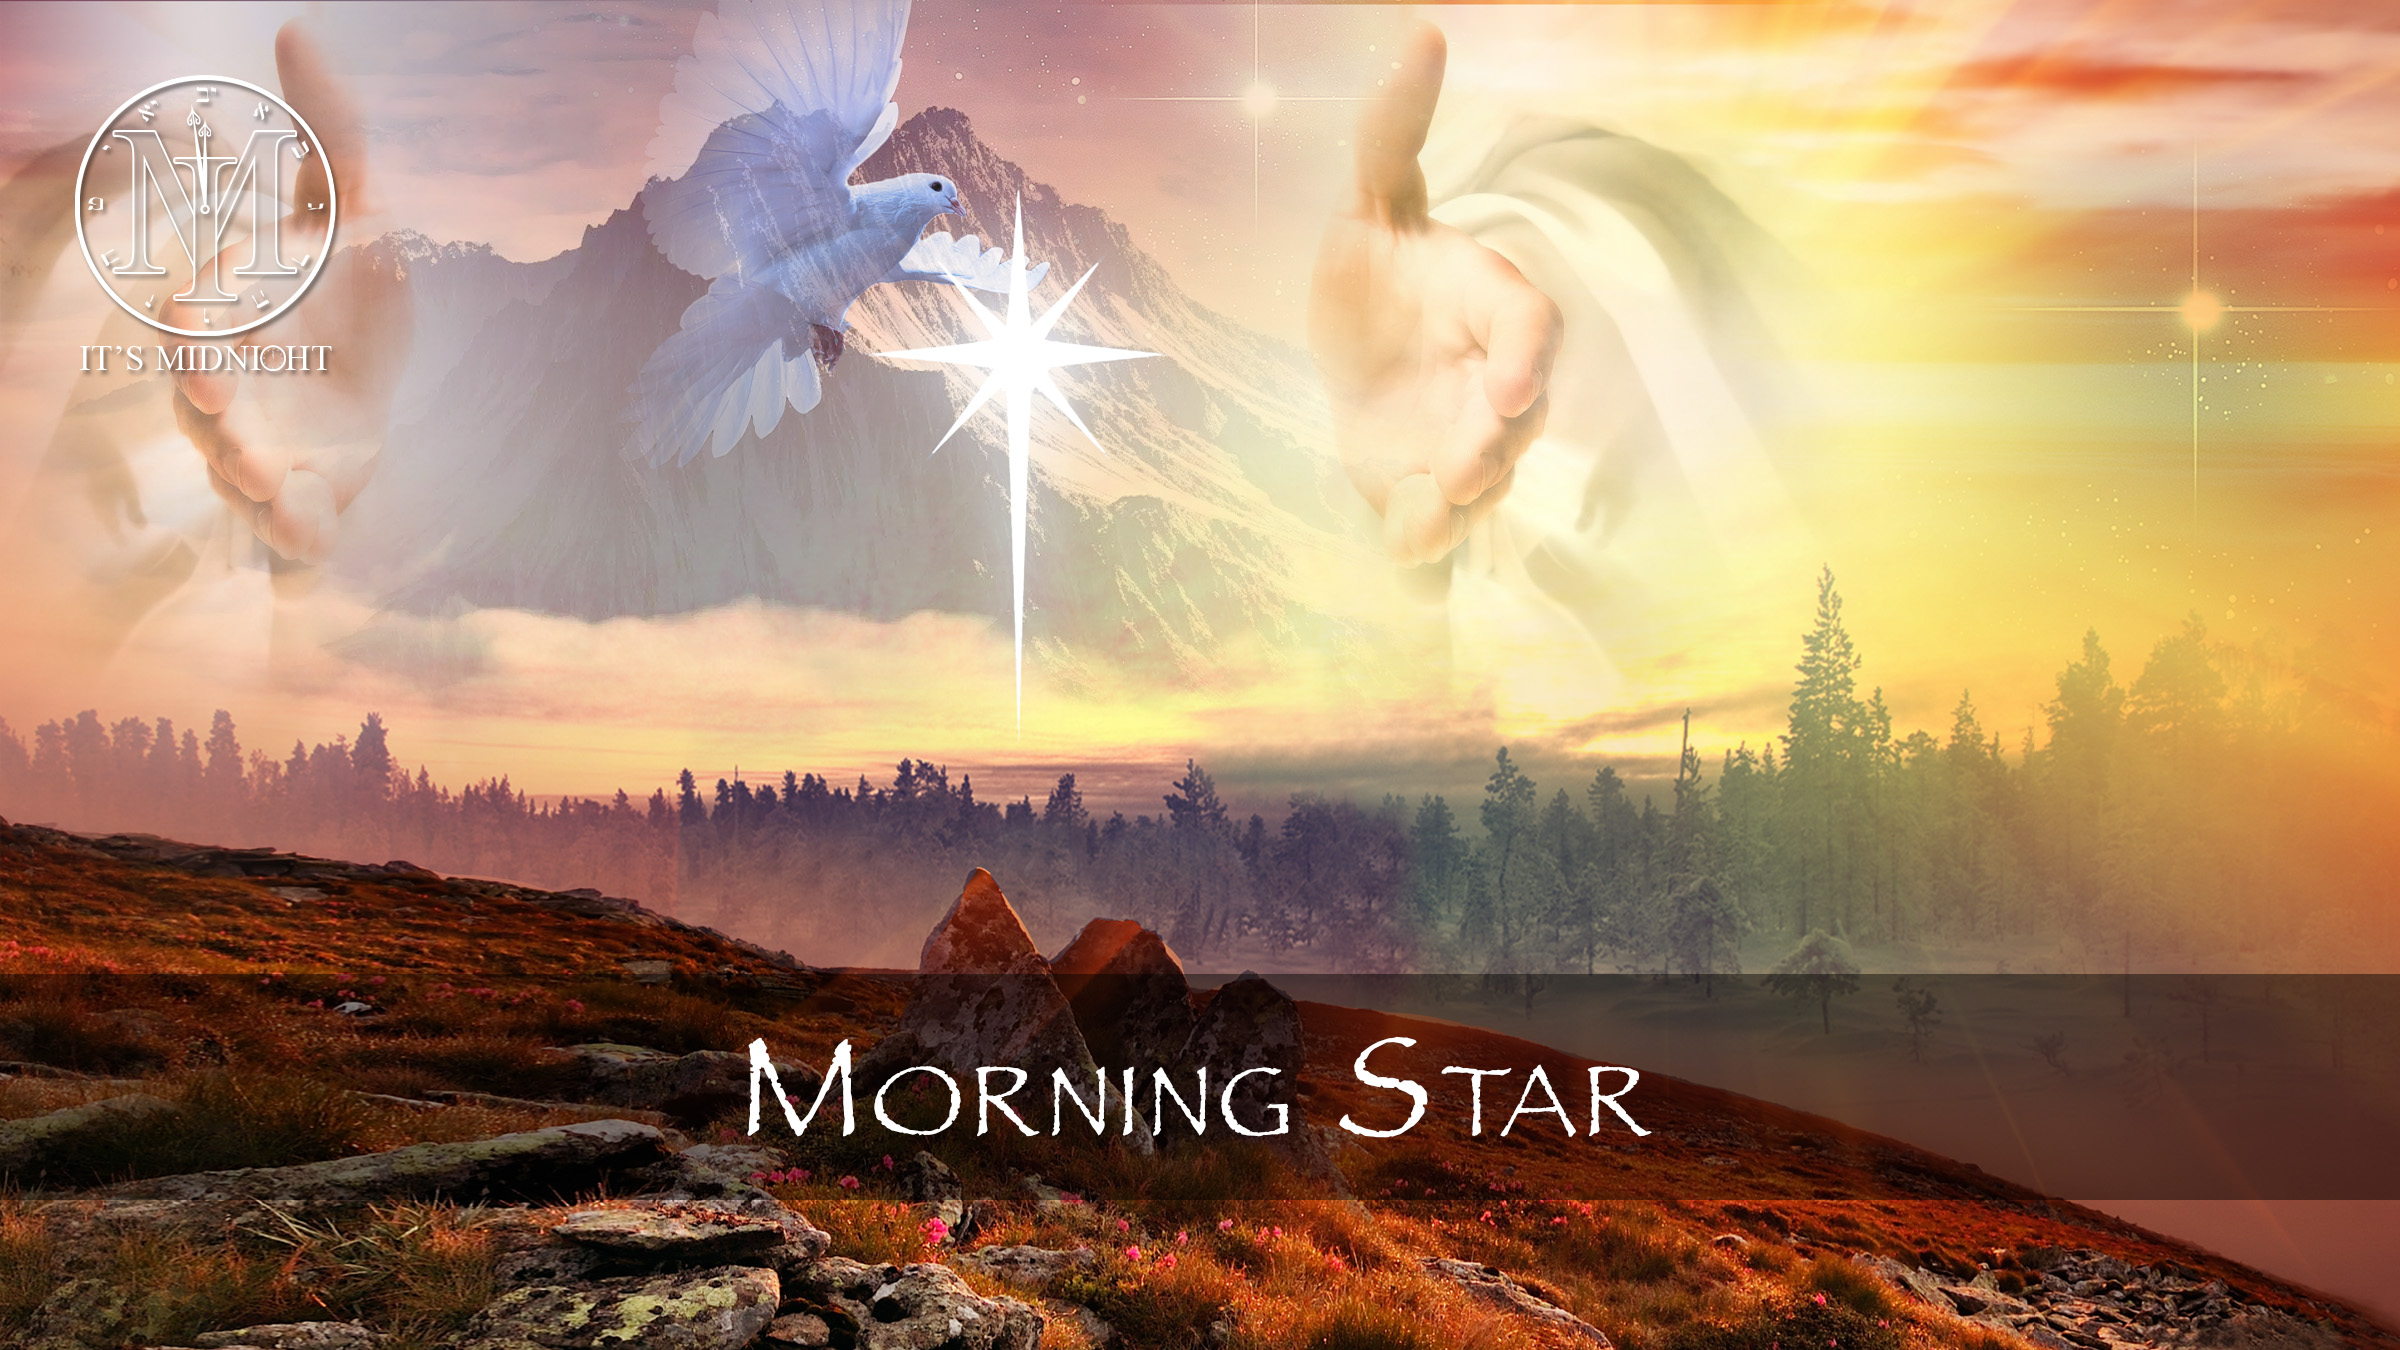 Morning Star Thumbnail (16x9) for YouTube.jpg